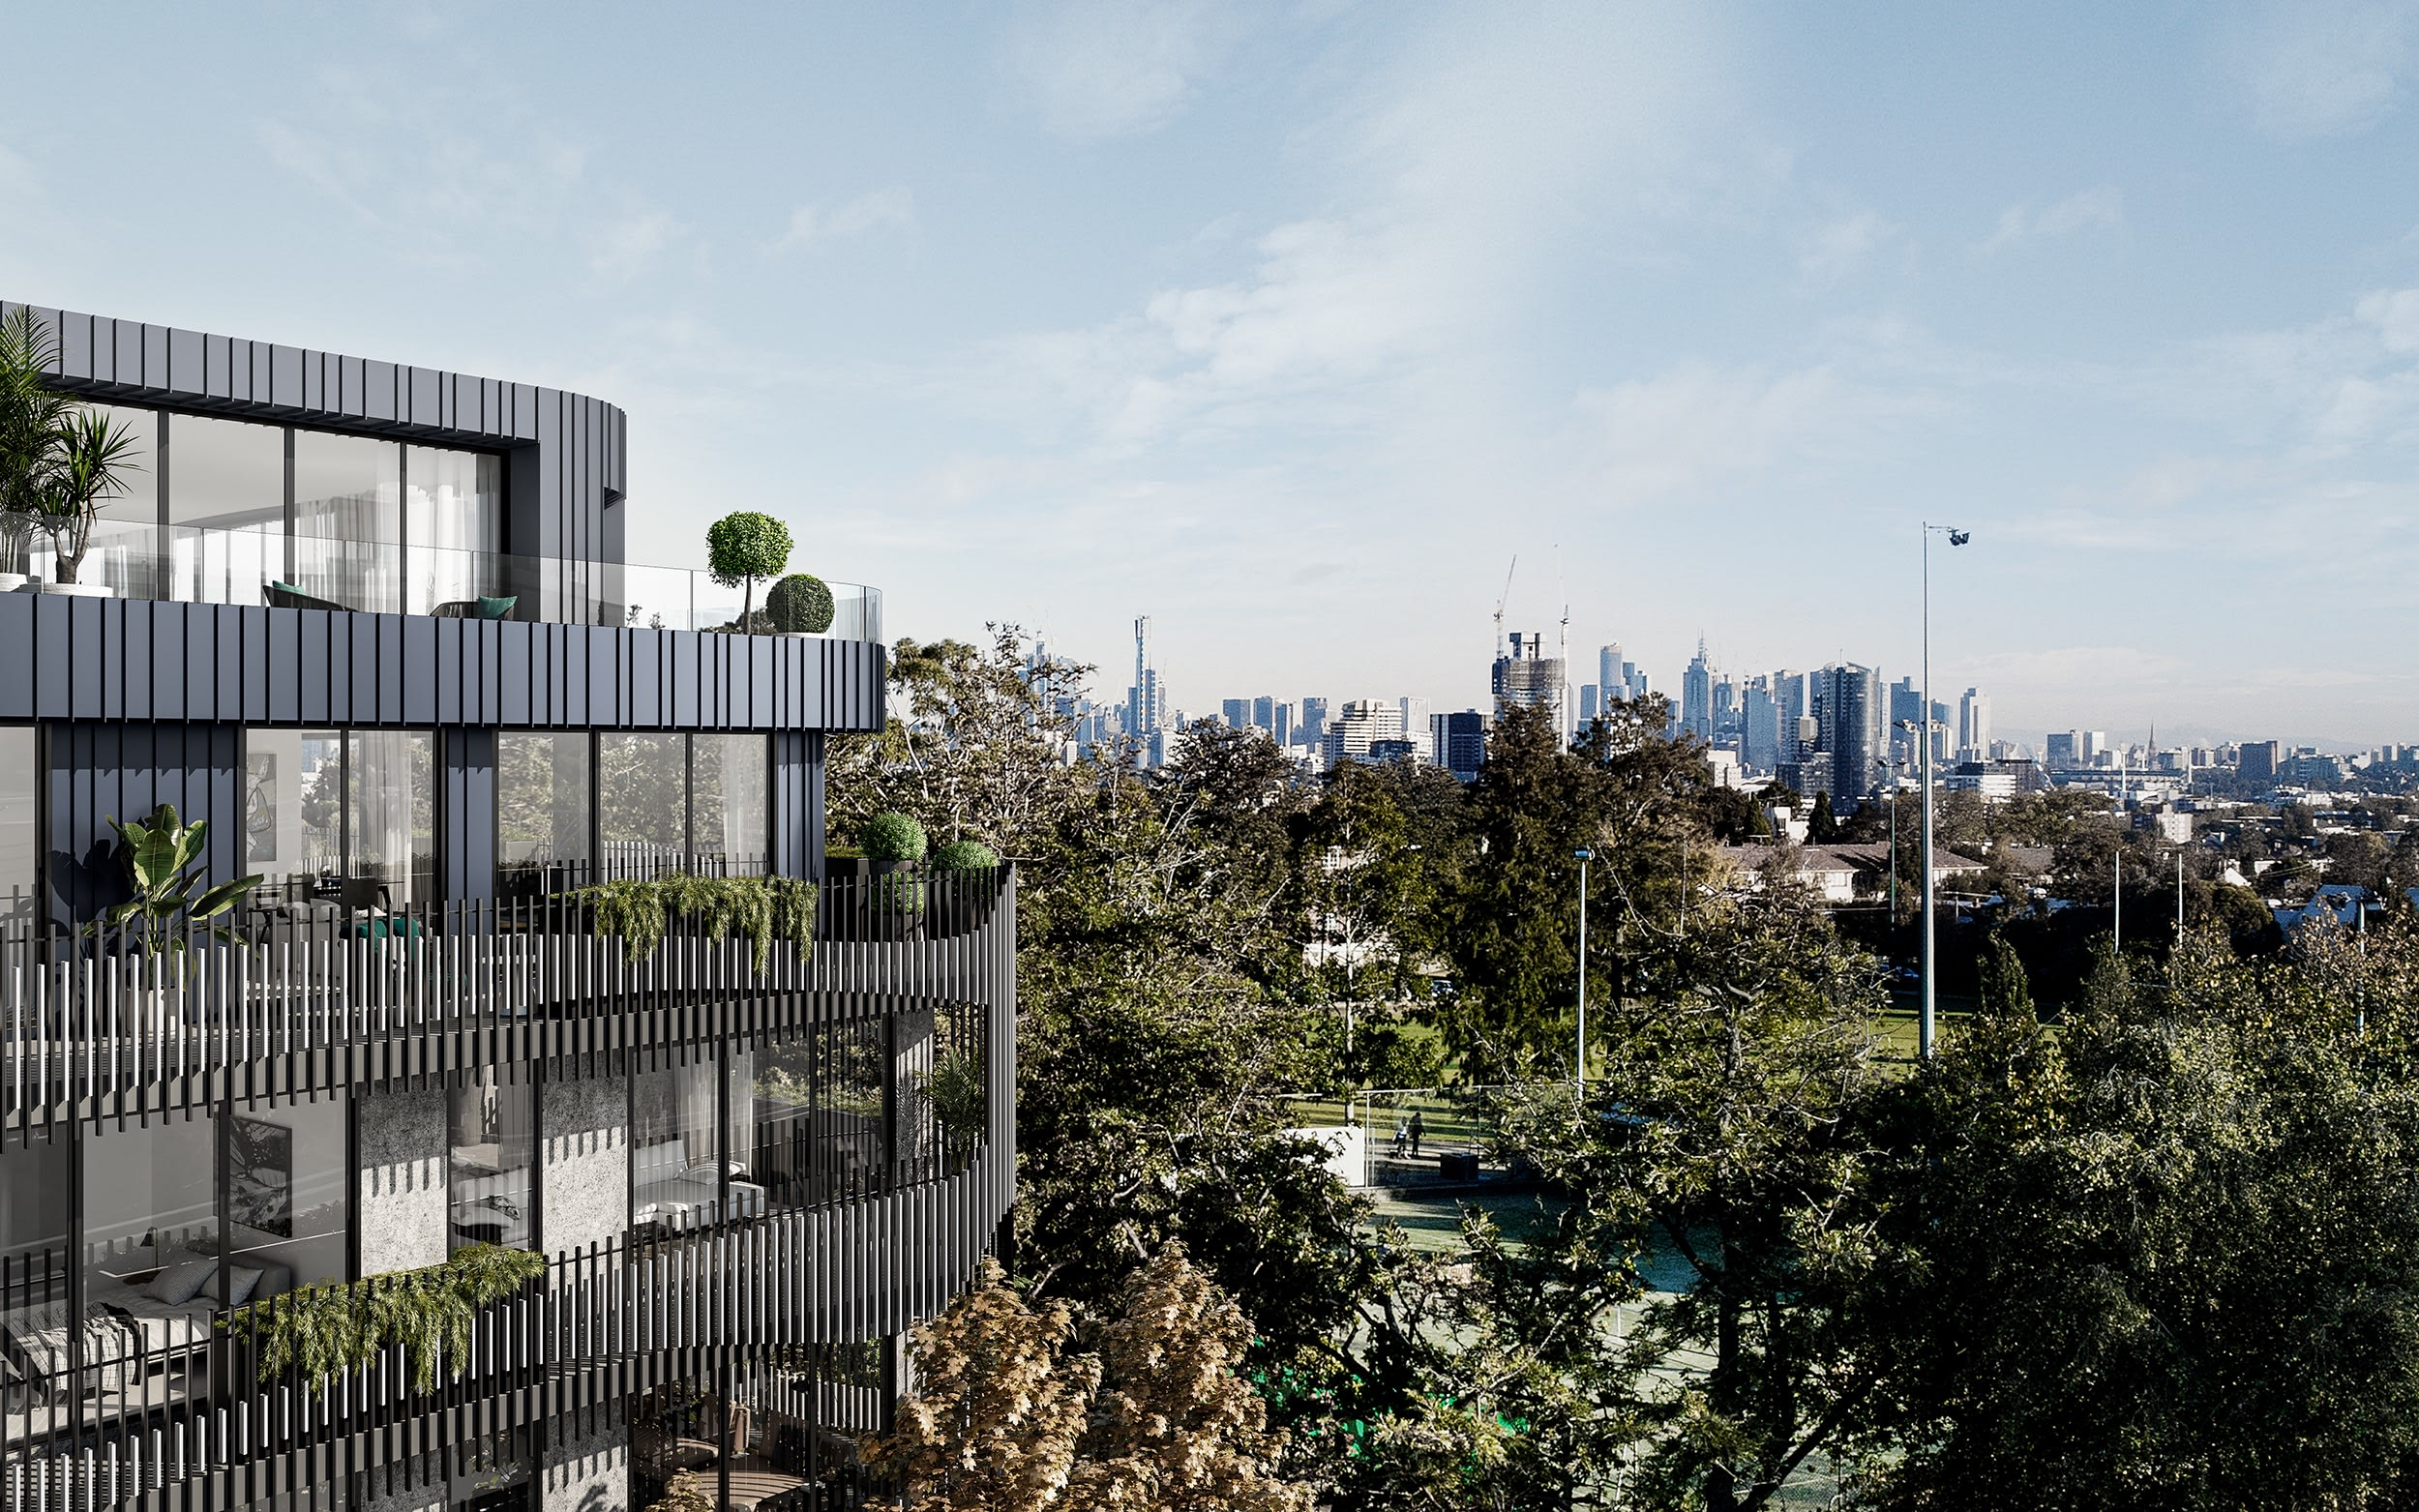 Armadale residence guarantees buyers a lifetime of parkland vistas